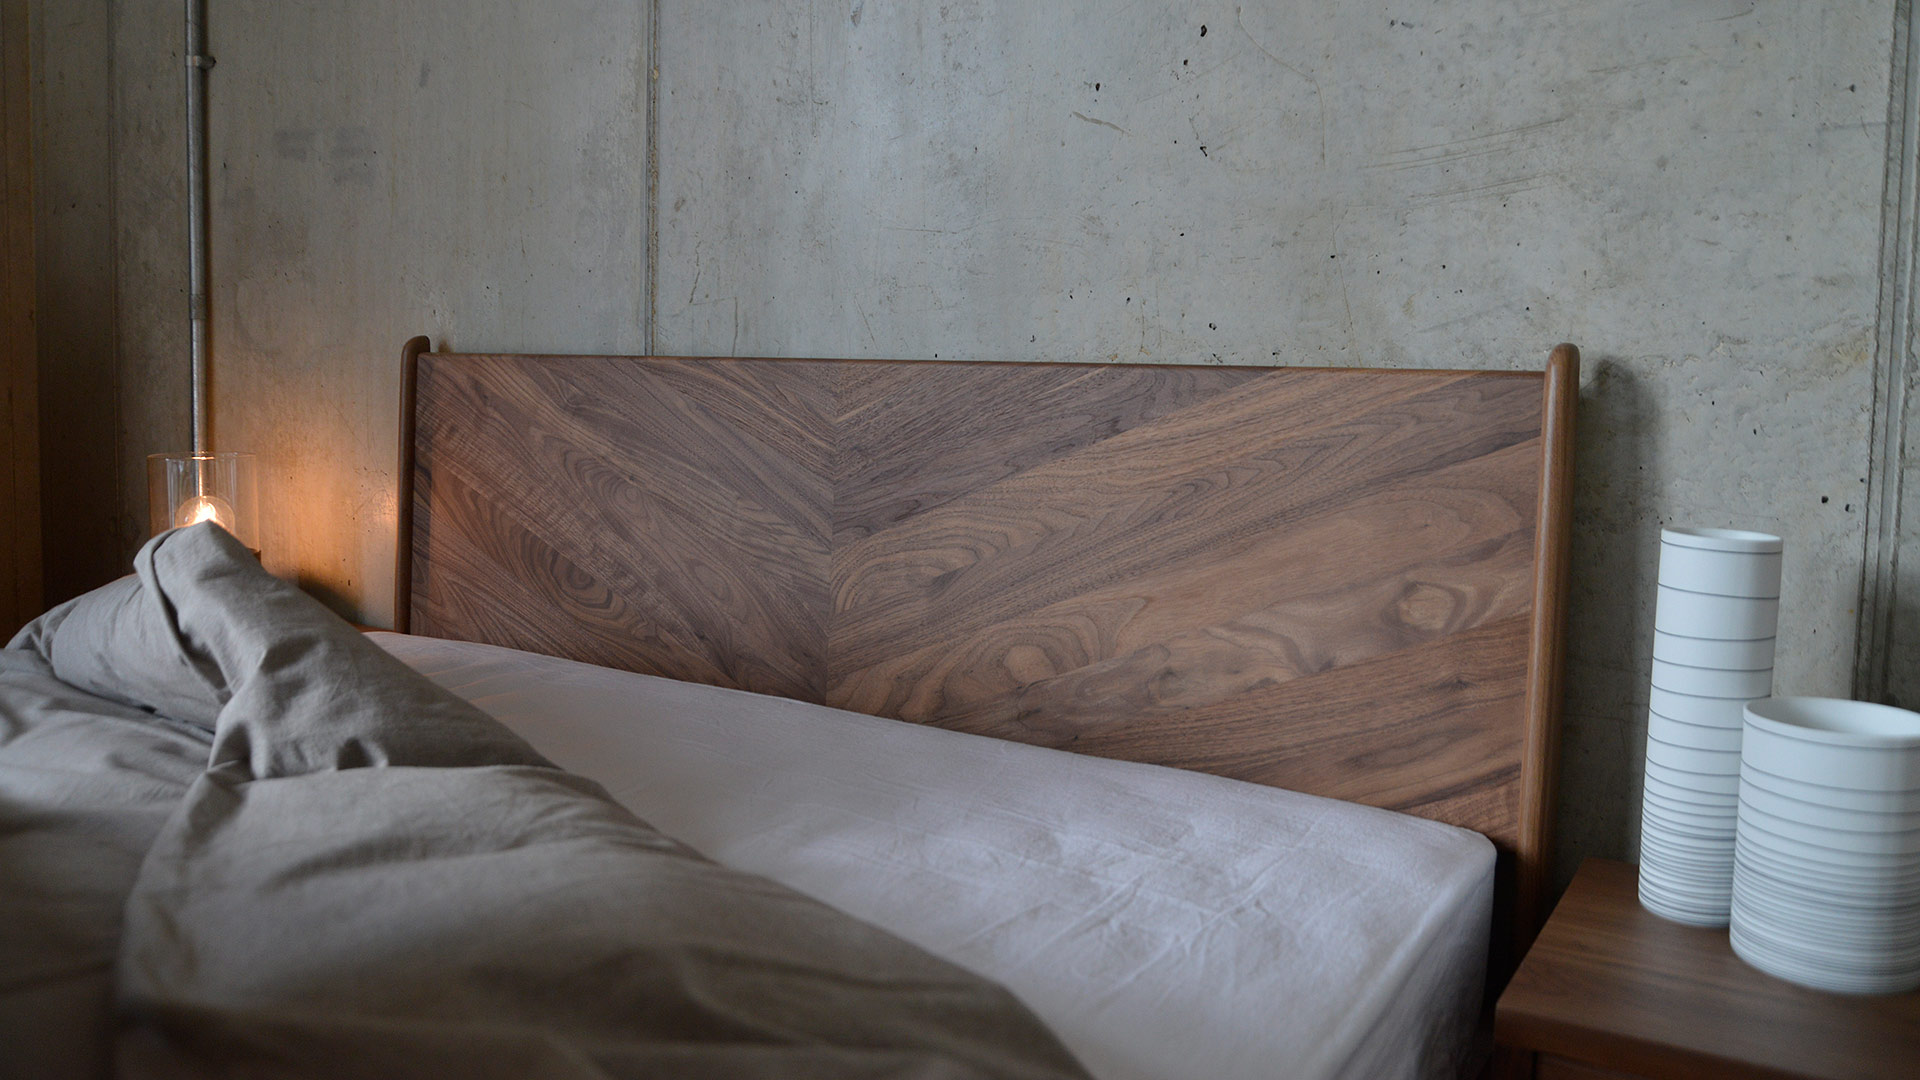 Walnut Hoxton Bed Headboard - Detail of the hand-crafted Chevron Design made from a choice of solid woods.